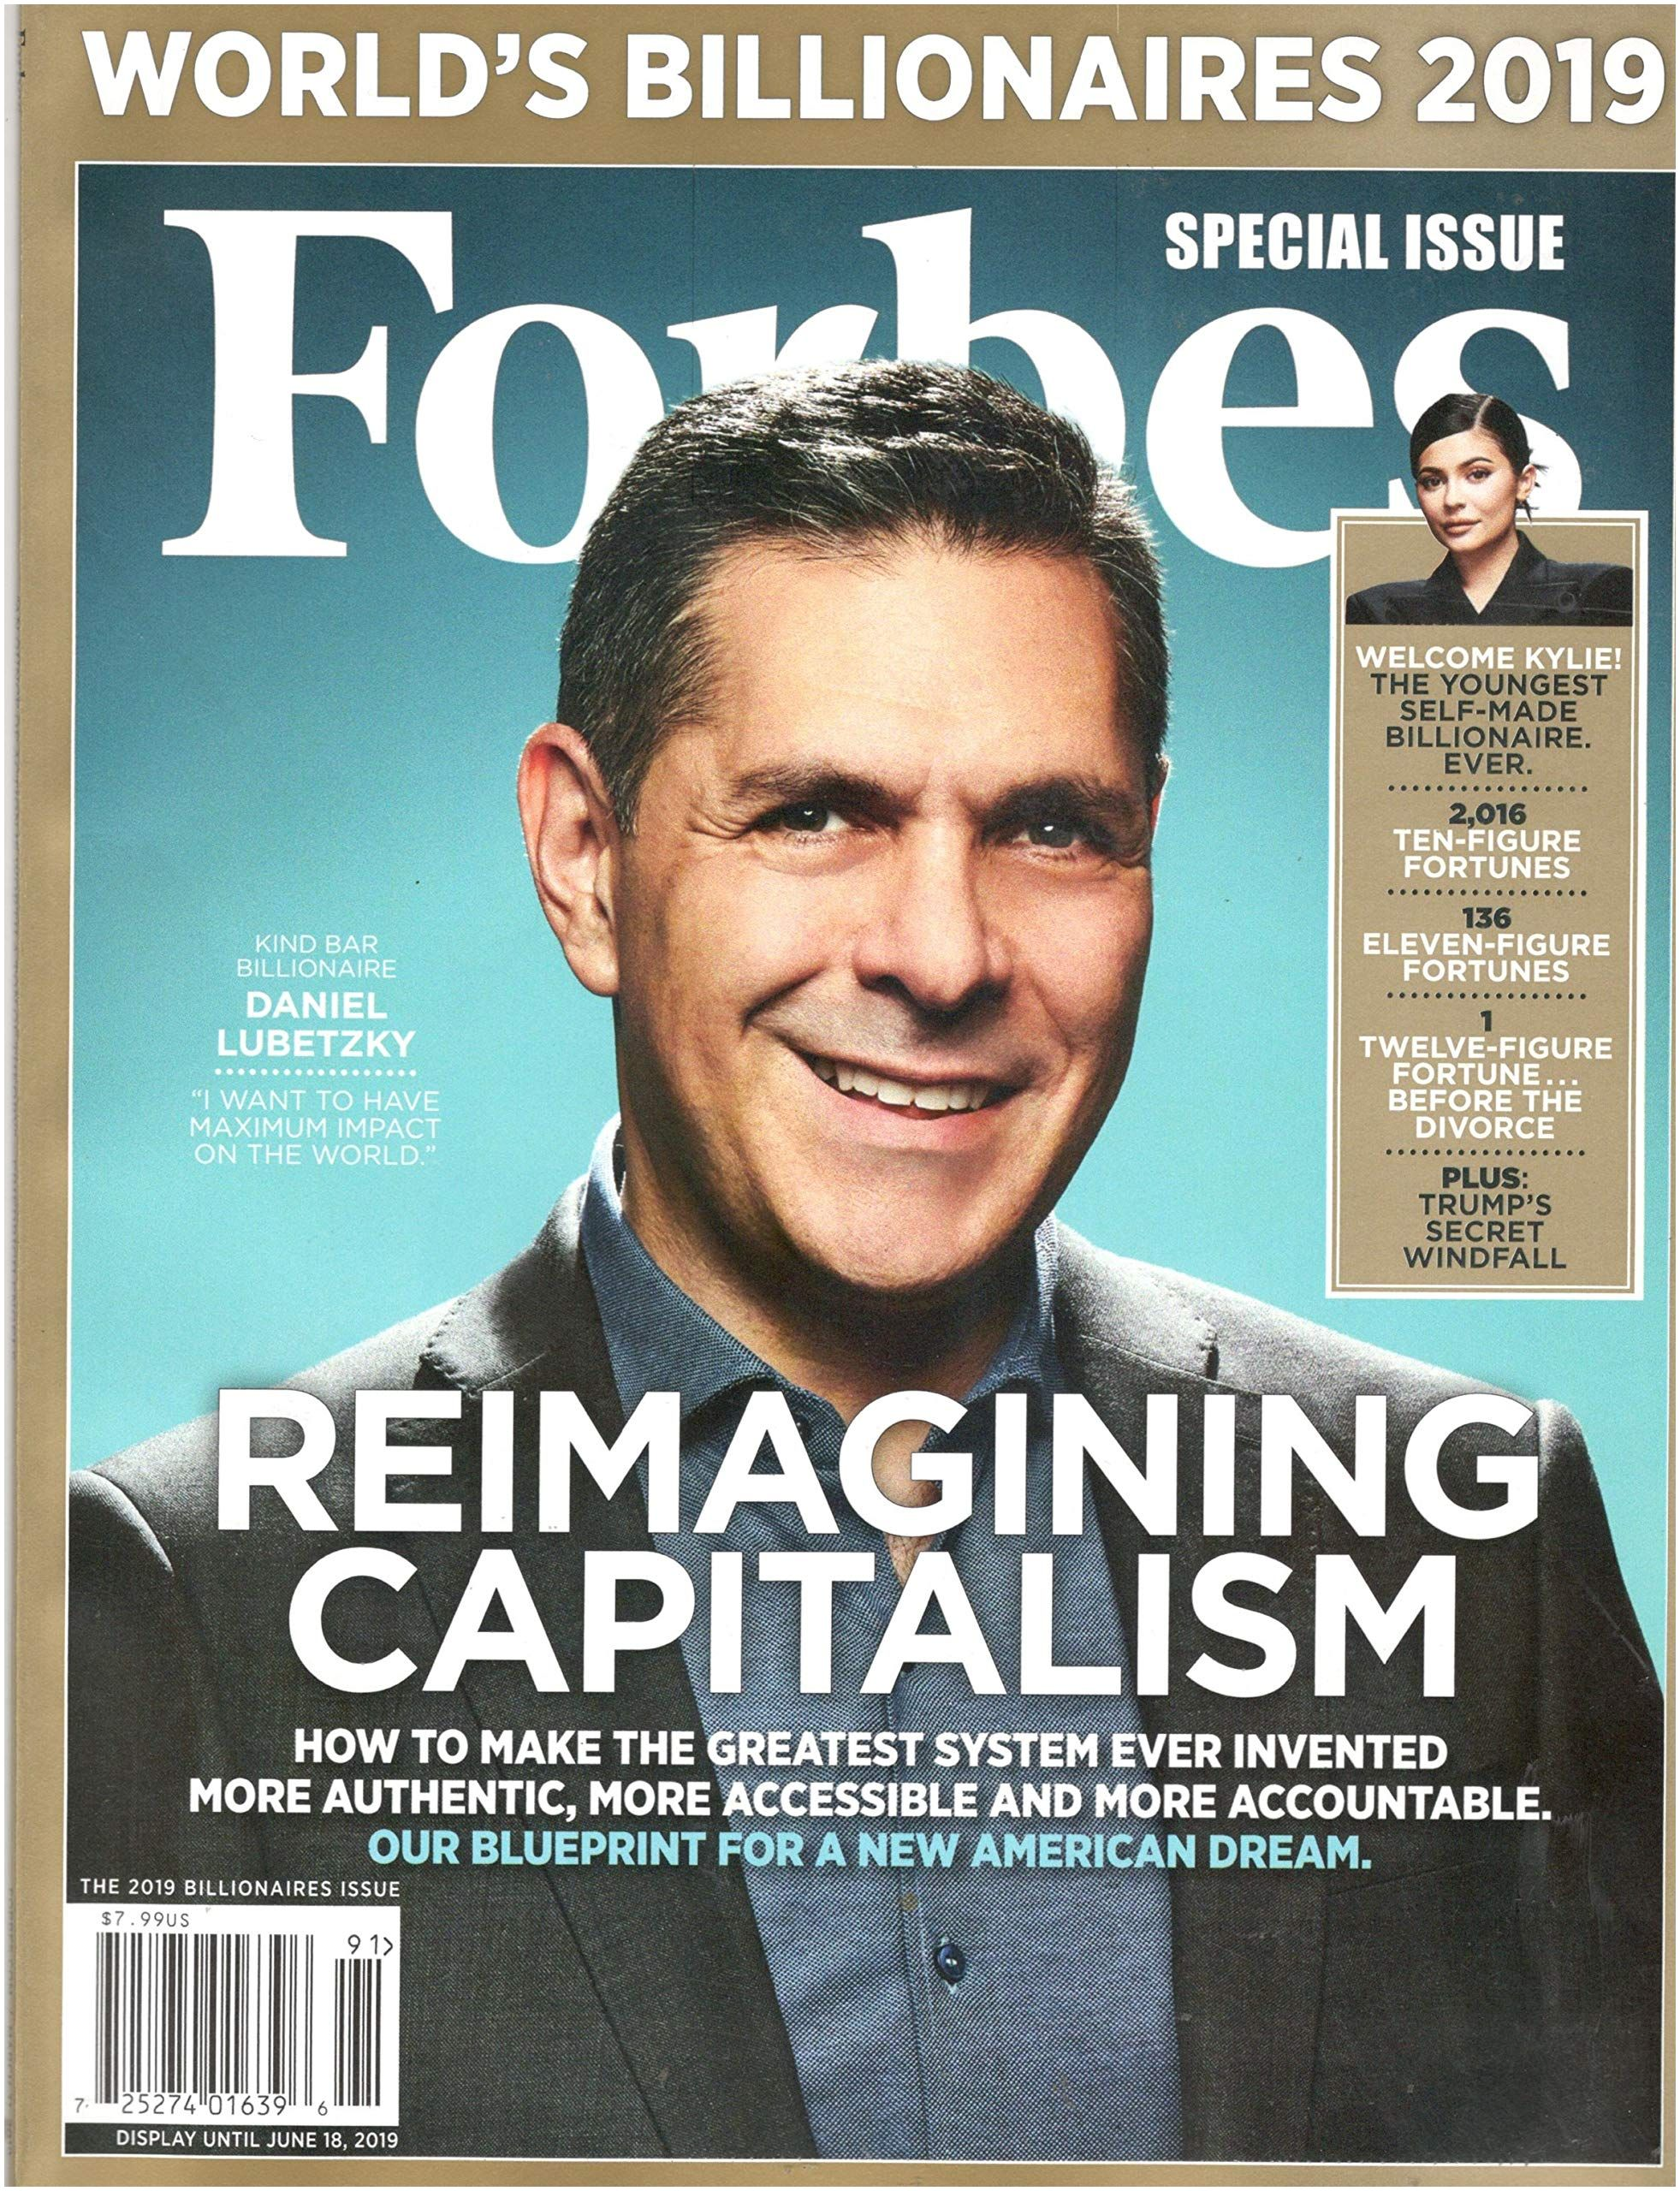 Forbes Magazine Review forbes Magazine March 31 2019 World S Billionaires 2019 Special